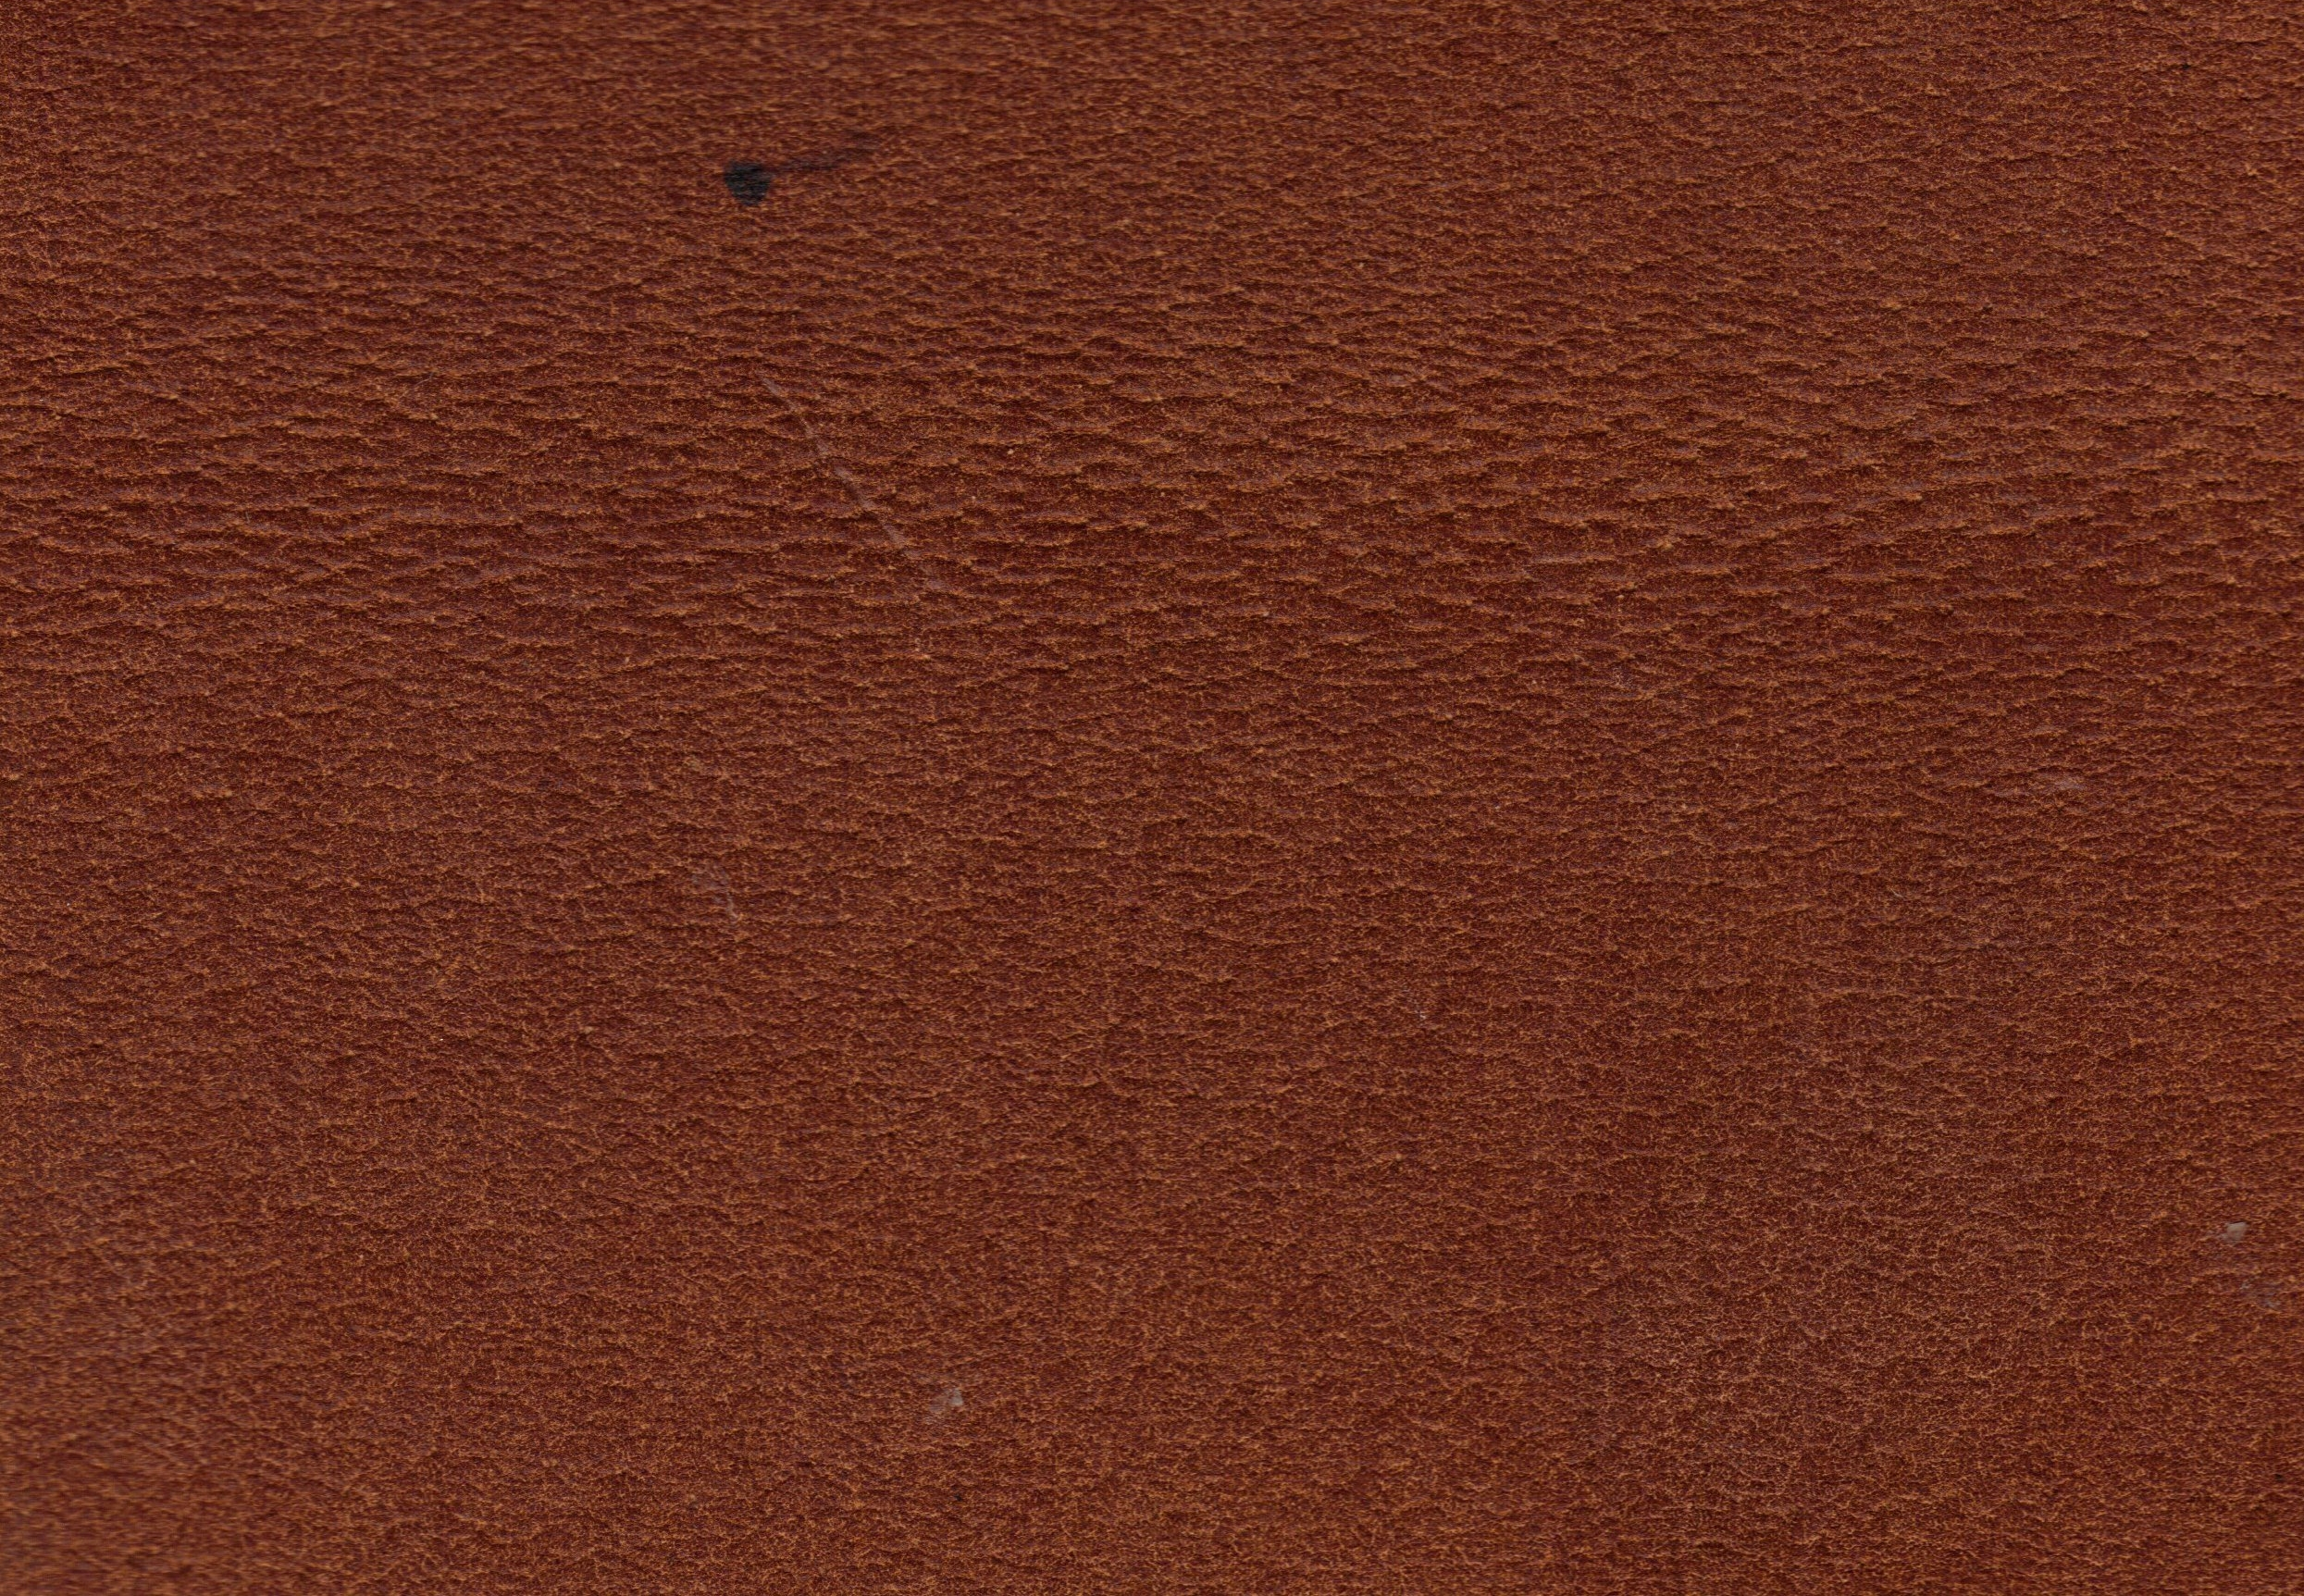 Http Www Onlygfx Com Brown Leather Texture Jpg